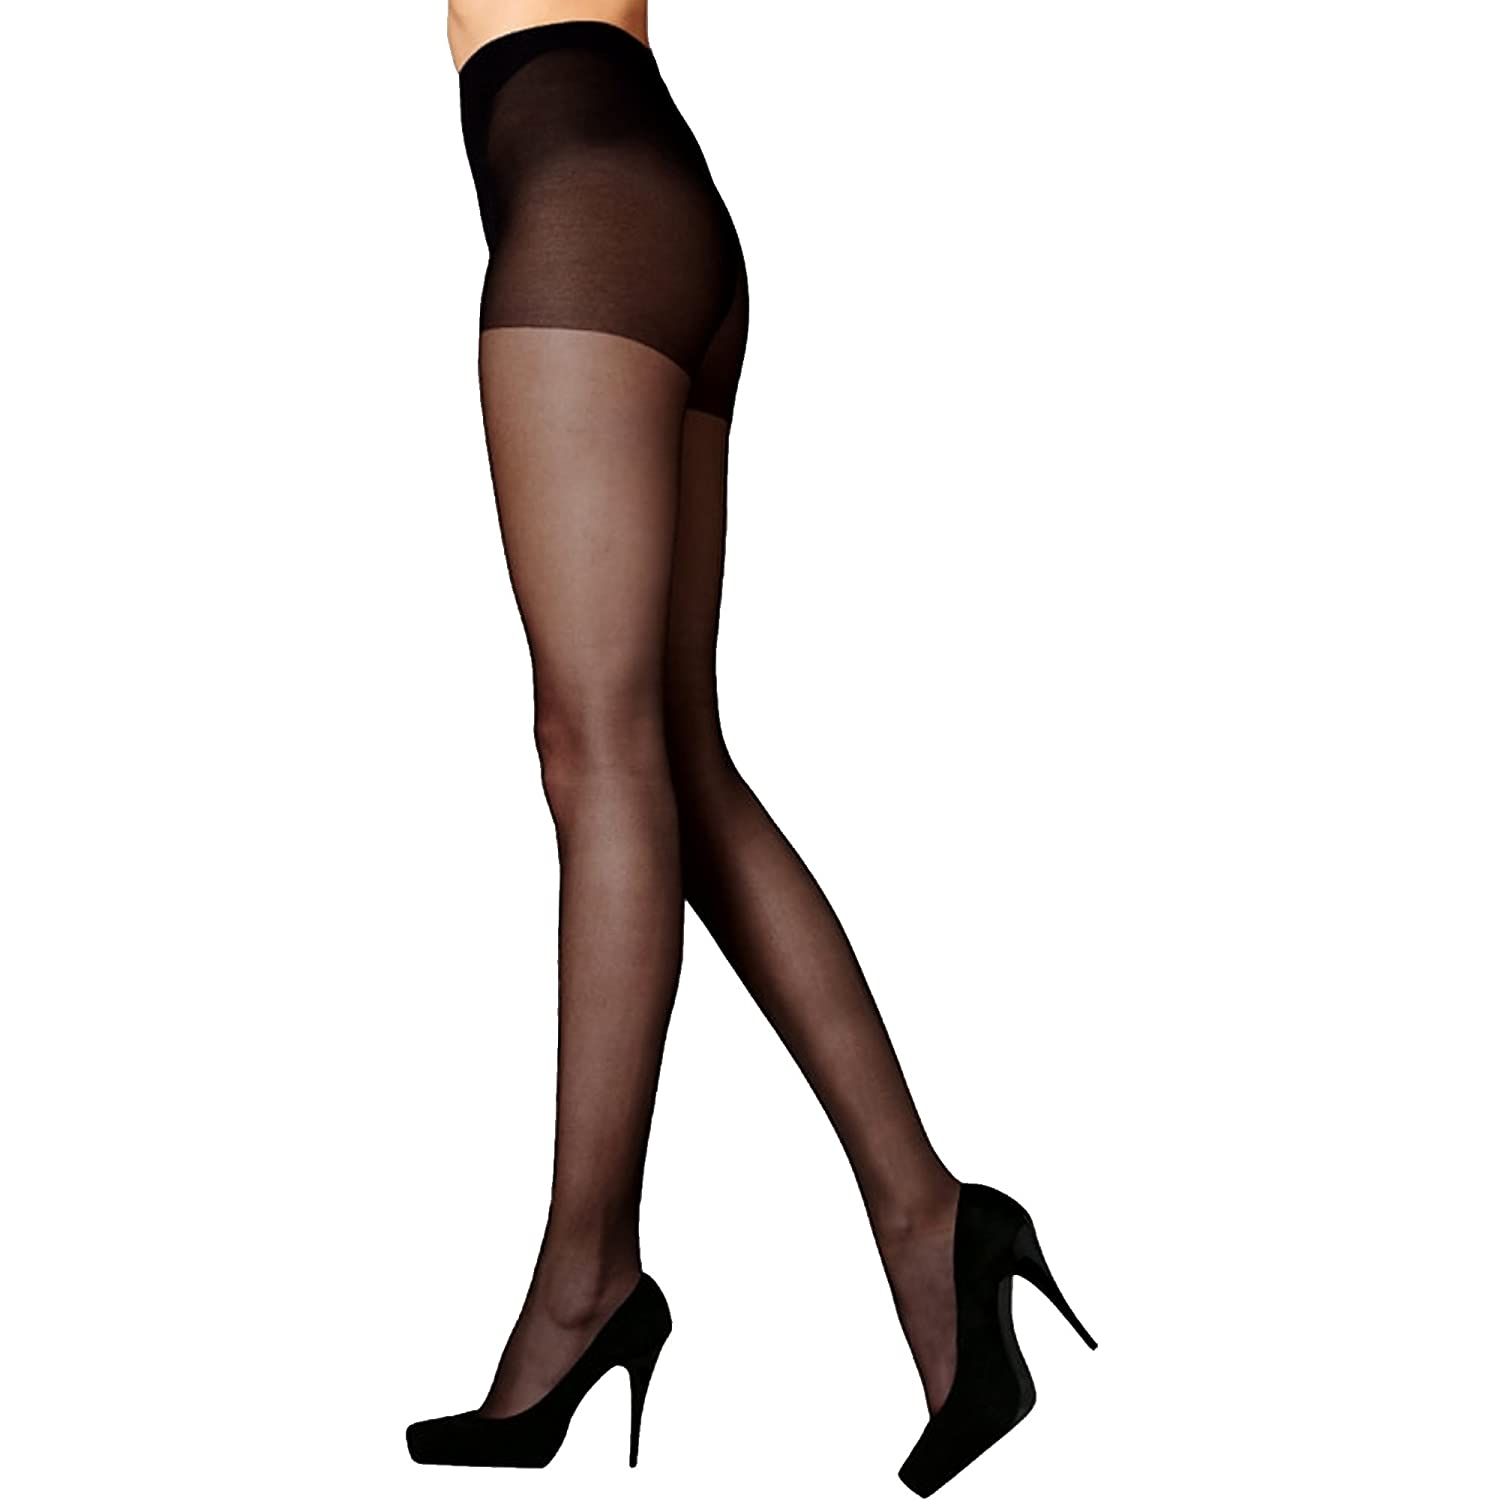 Pretty Legs 20 Denier Smooth Knit Everyday Tights (3 Pair Pack)